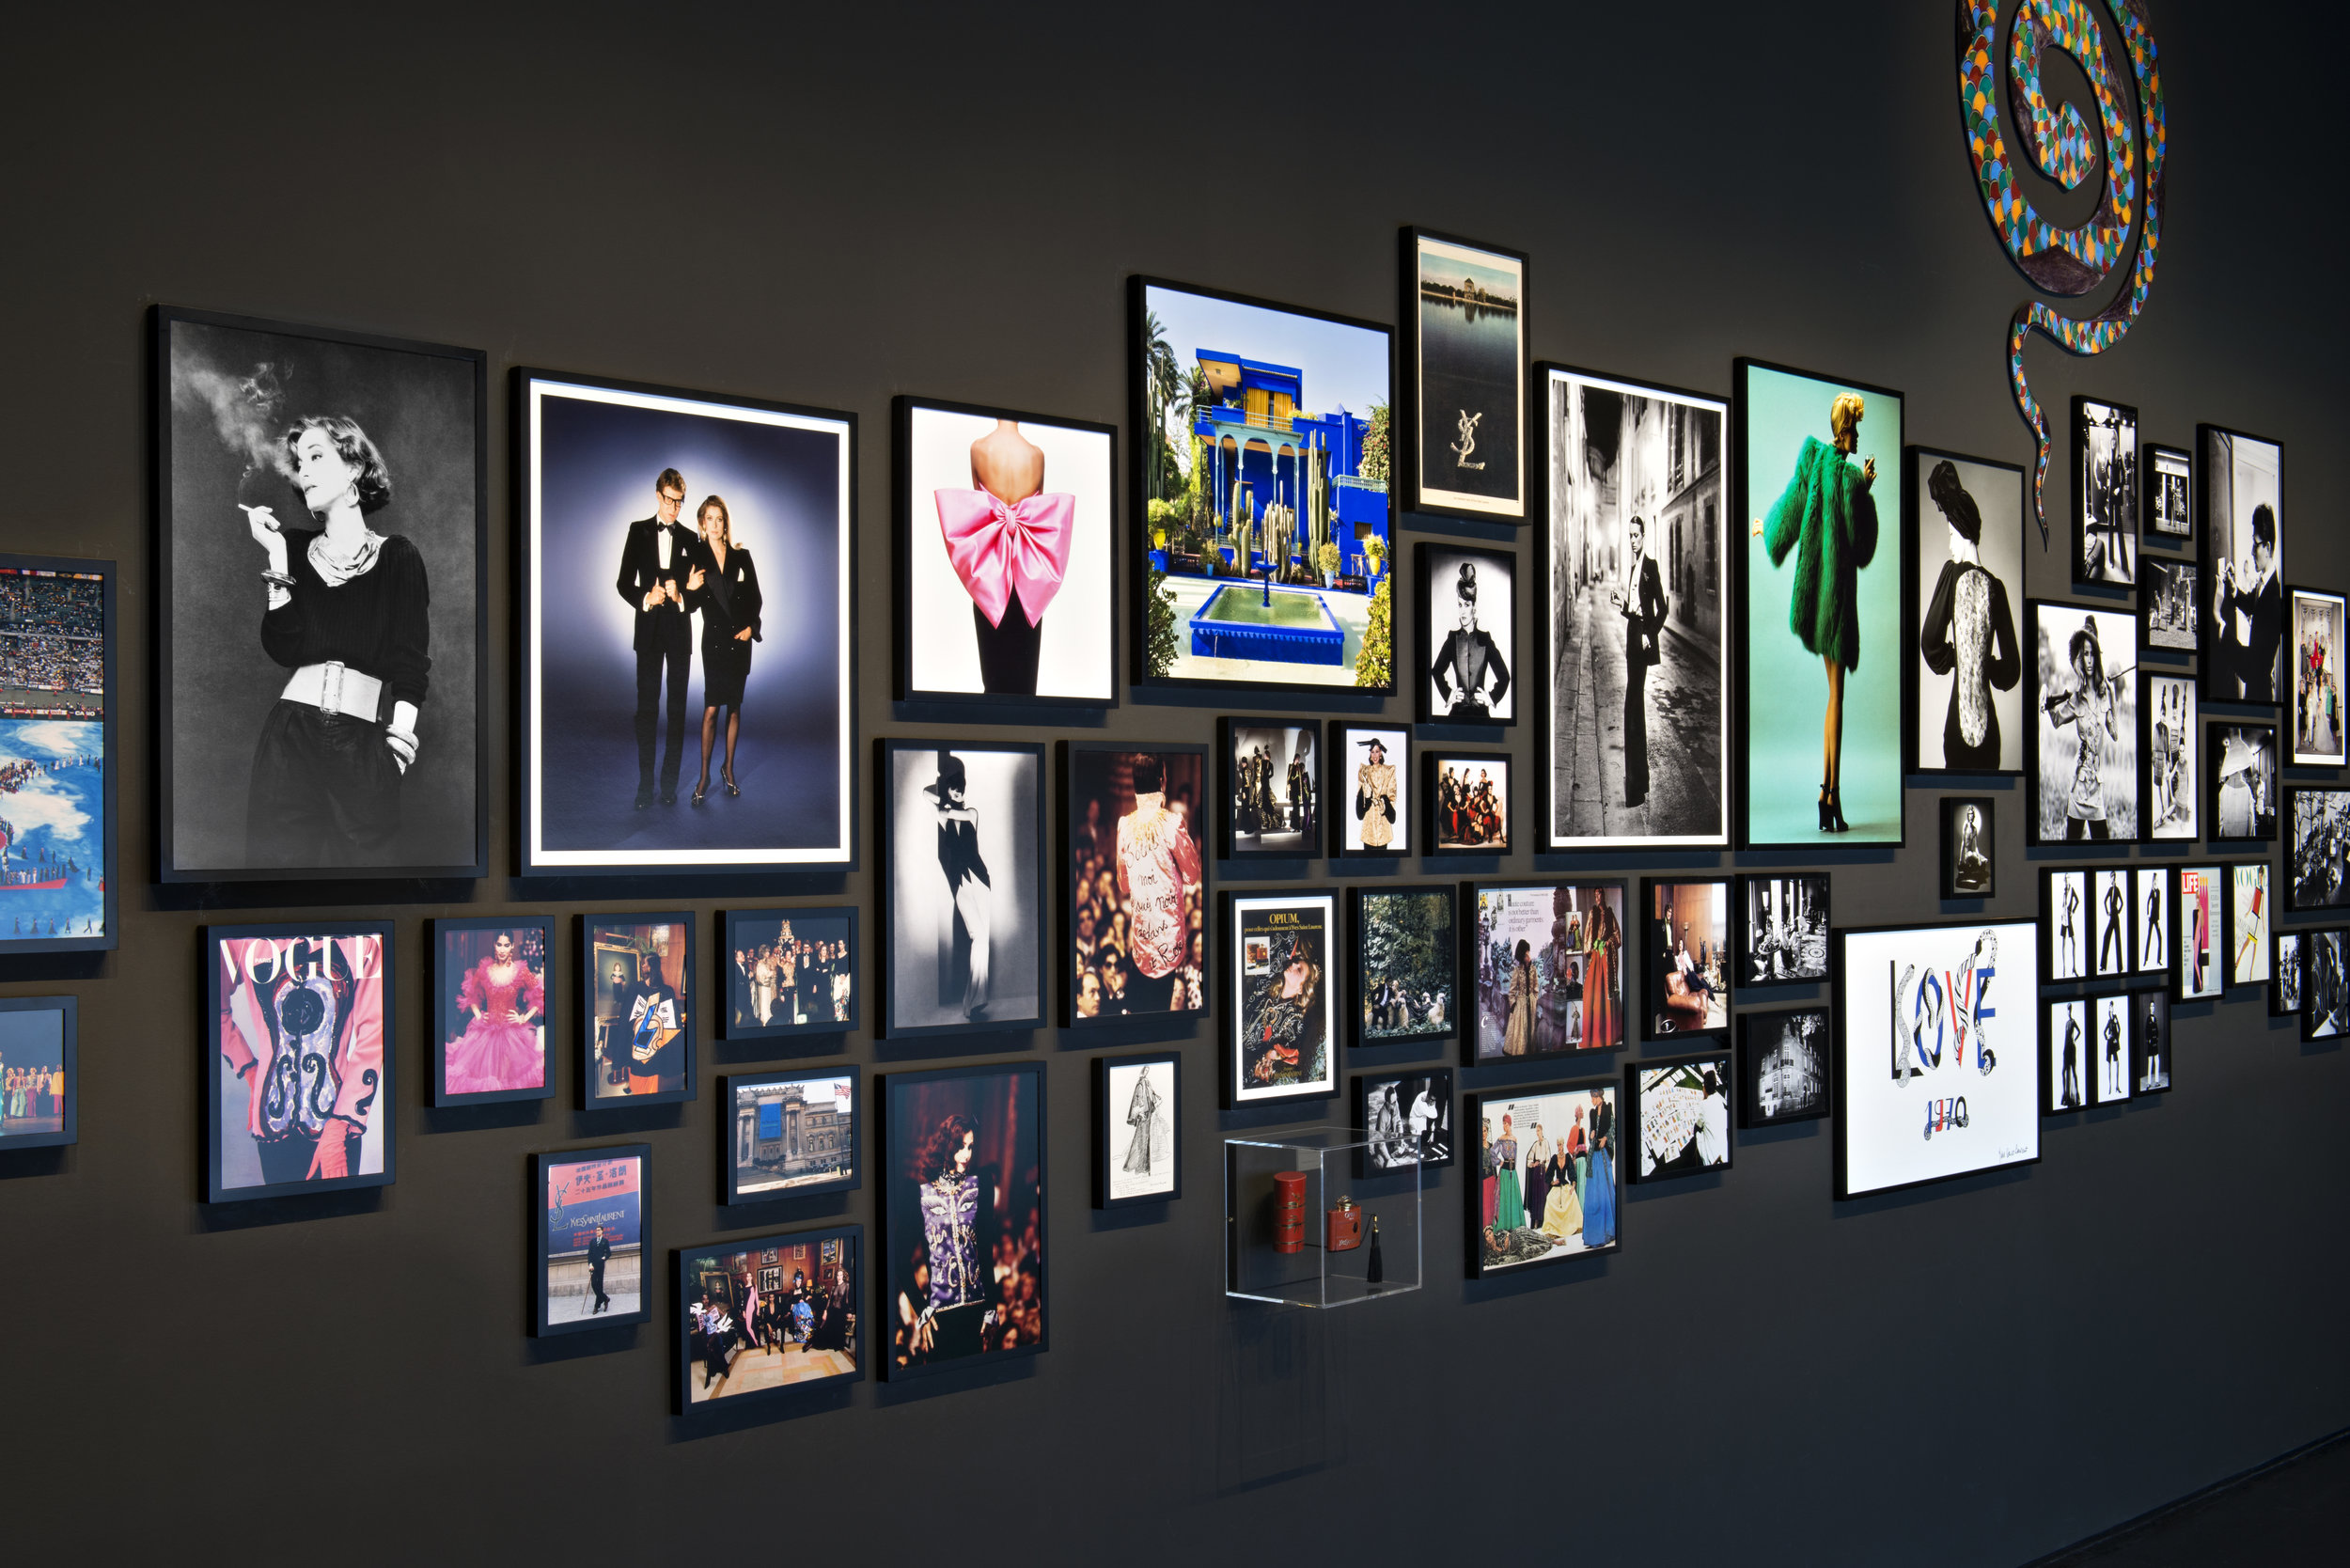 Salle YSL, featuring images by Helmut Newton, Michael Roberts, Jeanloup Sieff and others Photo © Fondation Jardin Majorelle / Photo Nicolas Mathéus